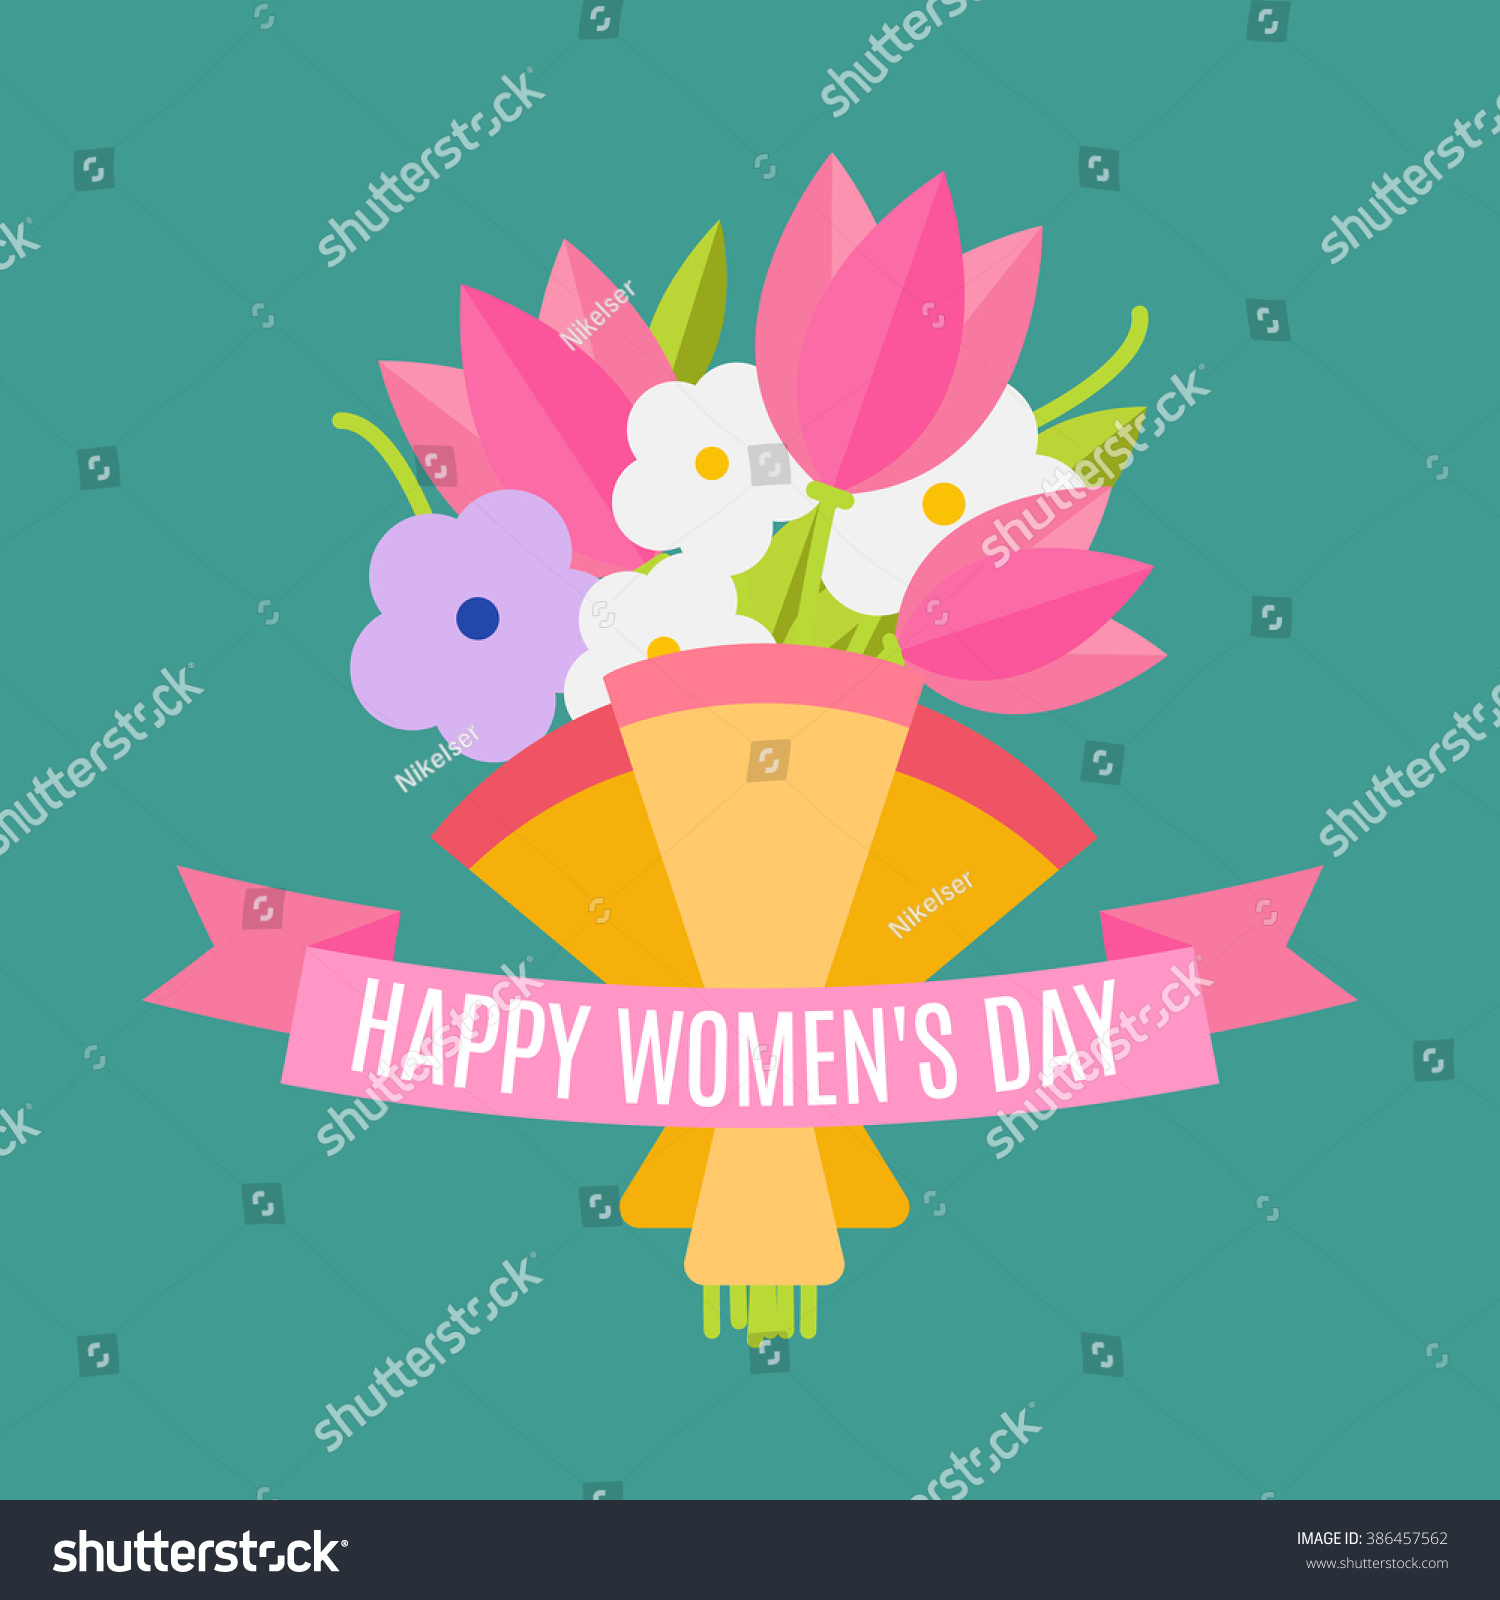 Happy women's day Beautiful wedding bouquet isolated on background in a flat style Wedding flat flowers congratulation card isolated Vector illustration EPS 10